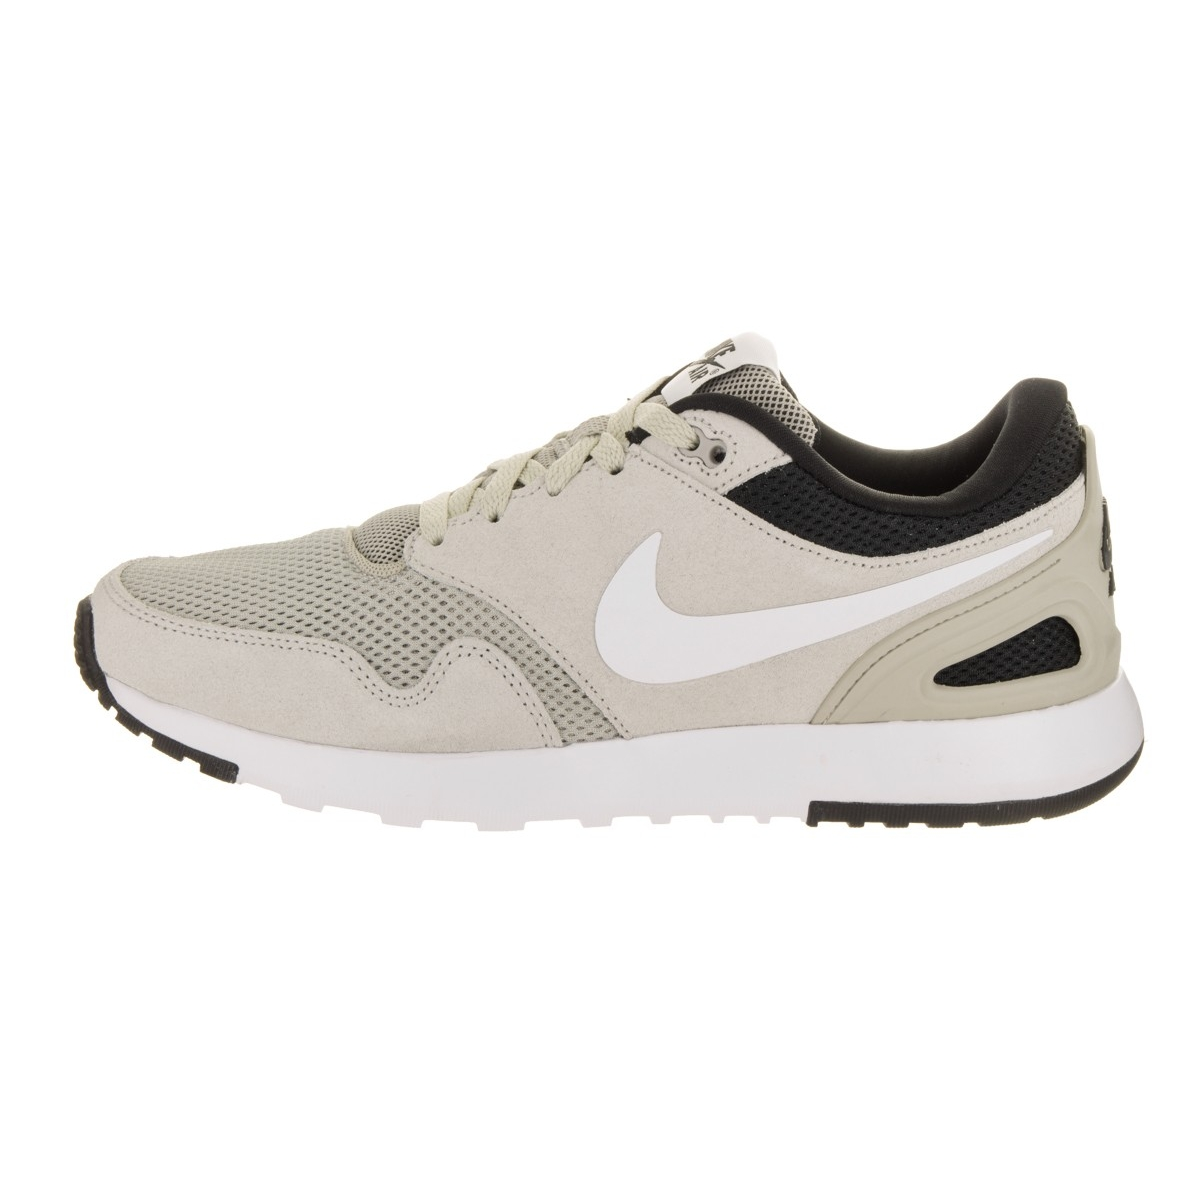 wholesale dealer 927fd a674d ... Scarpa Nike Air Vibenna Moda Uomo Beige. LOADING IMAGES